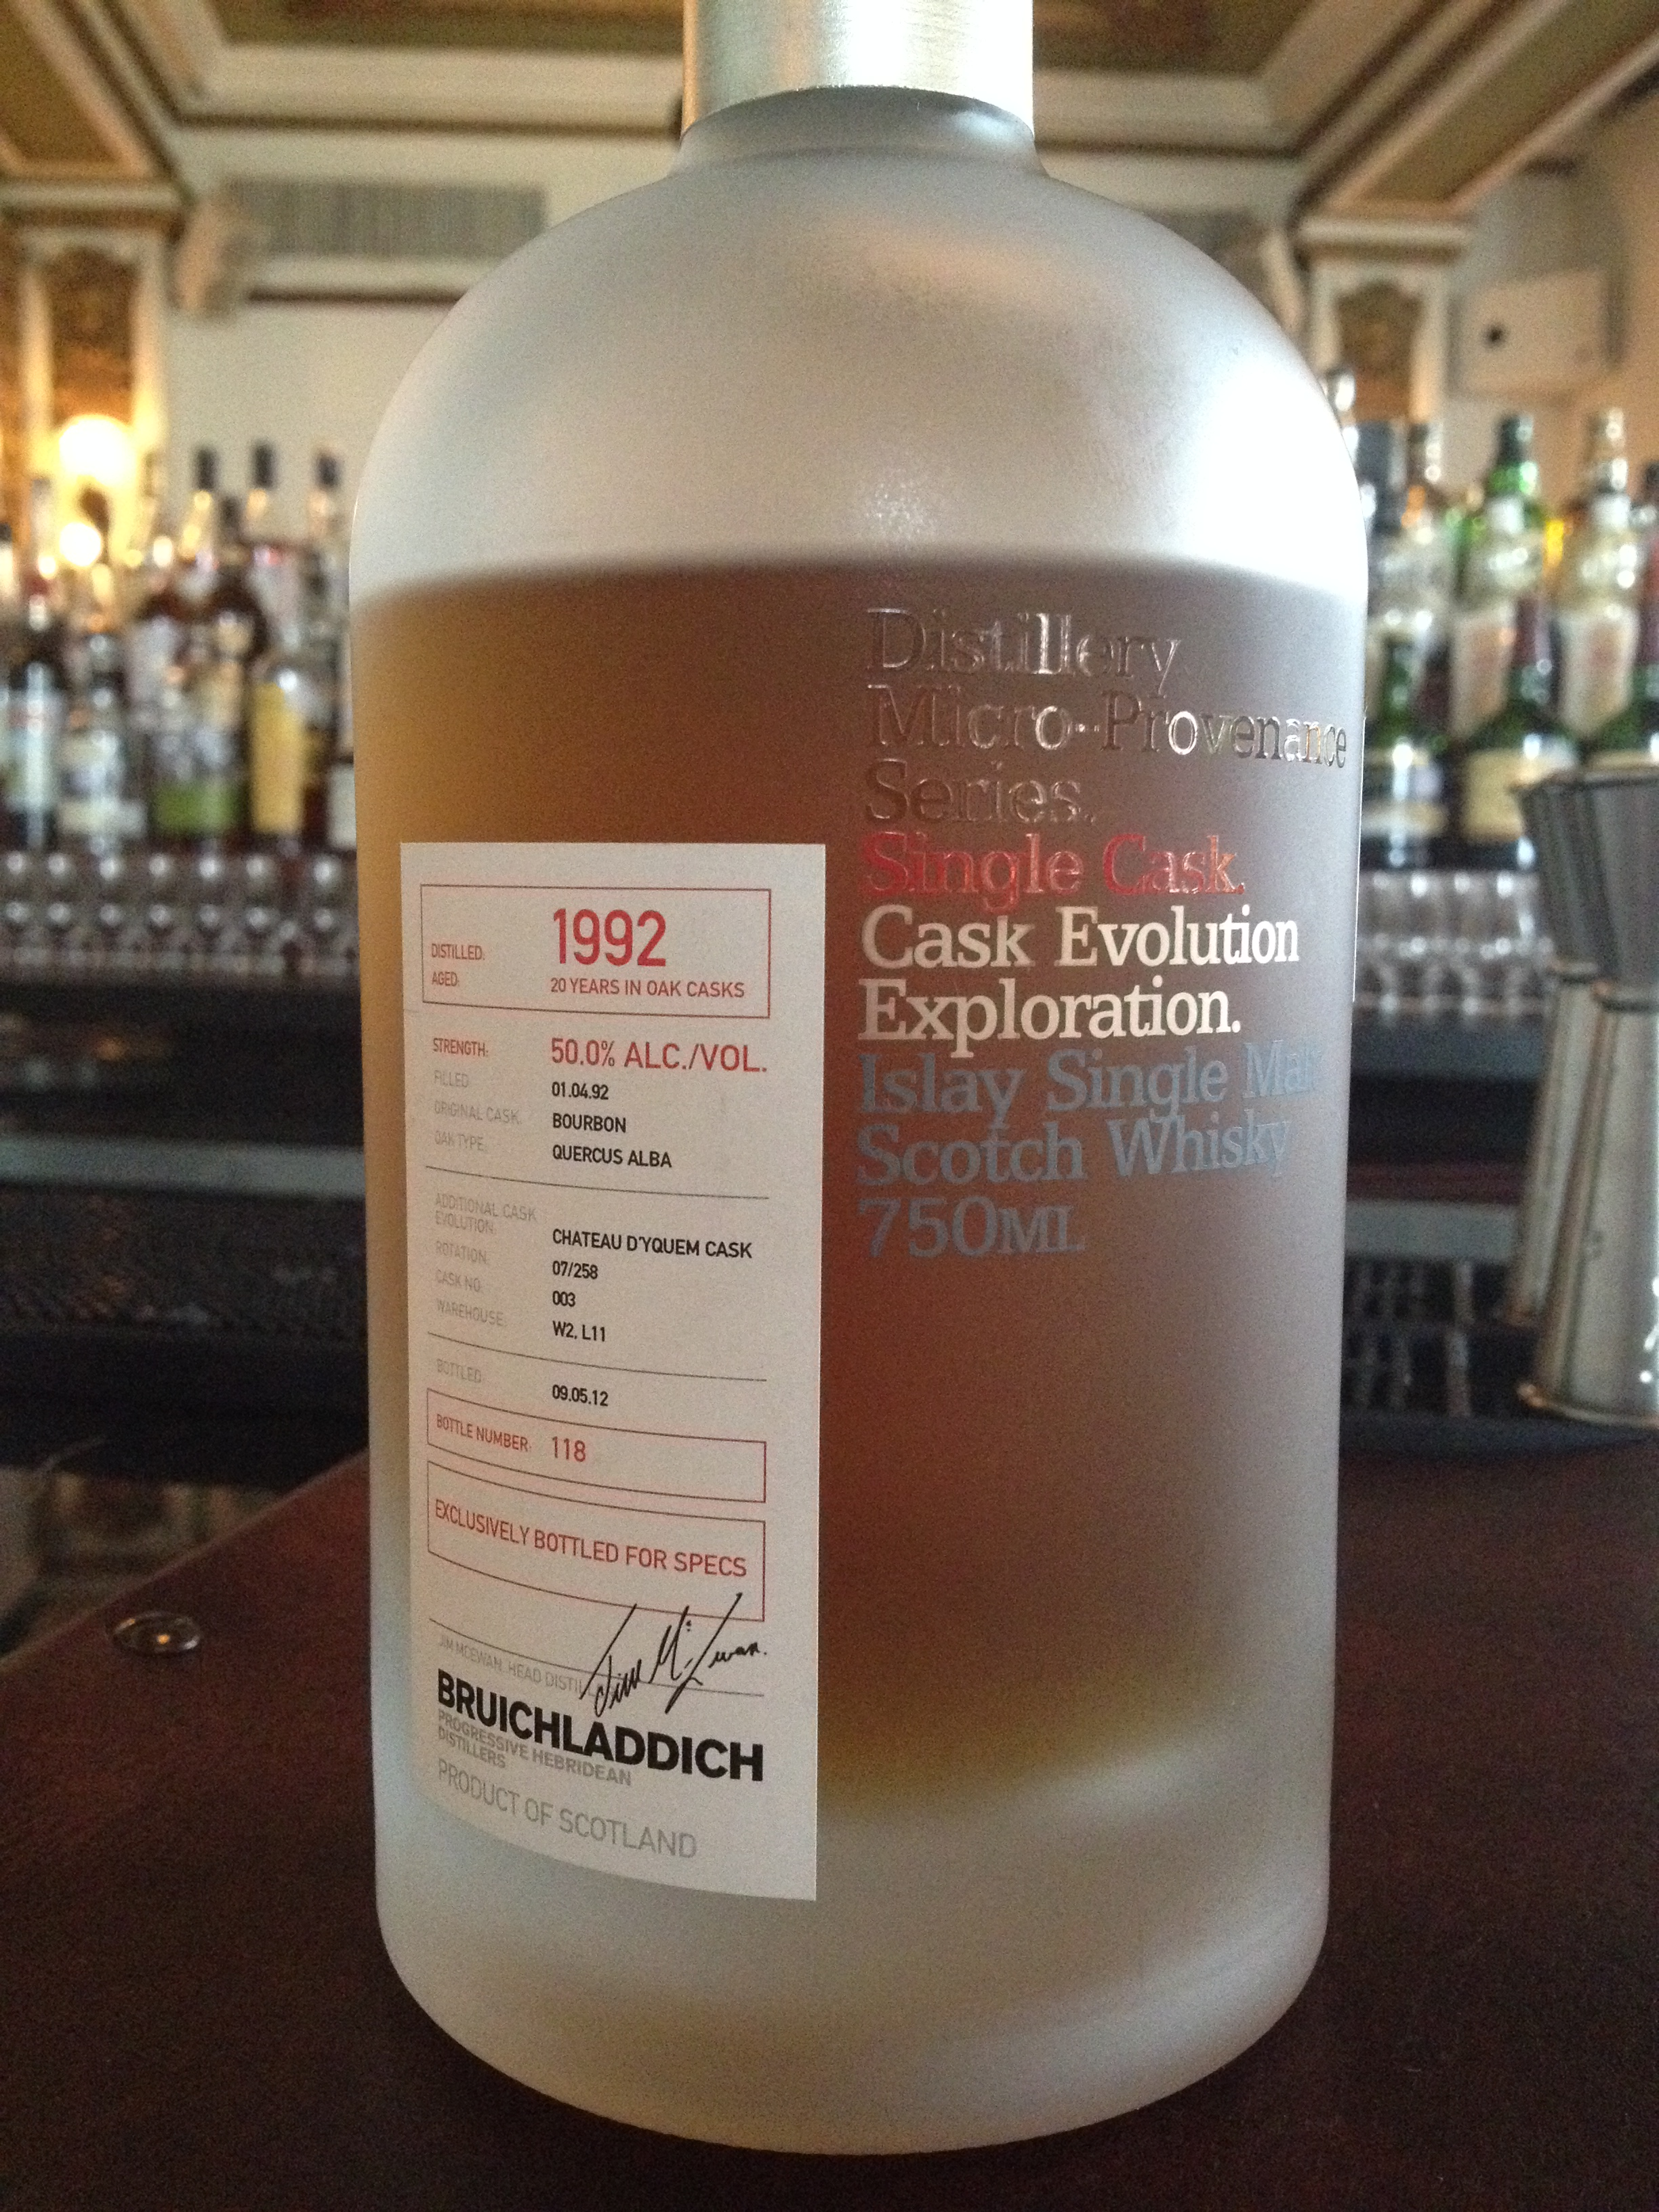 20 Year Old | 50% ABV - Distillery | Bruichladdich